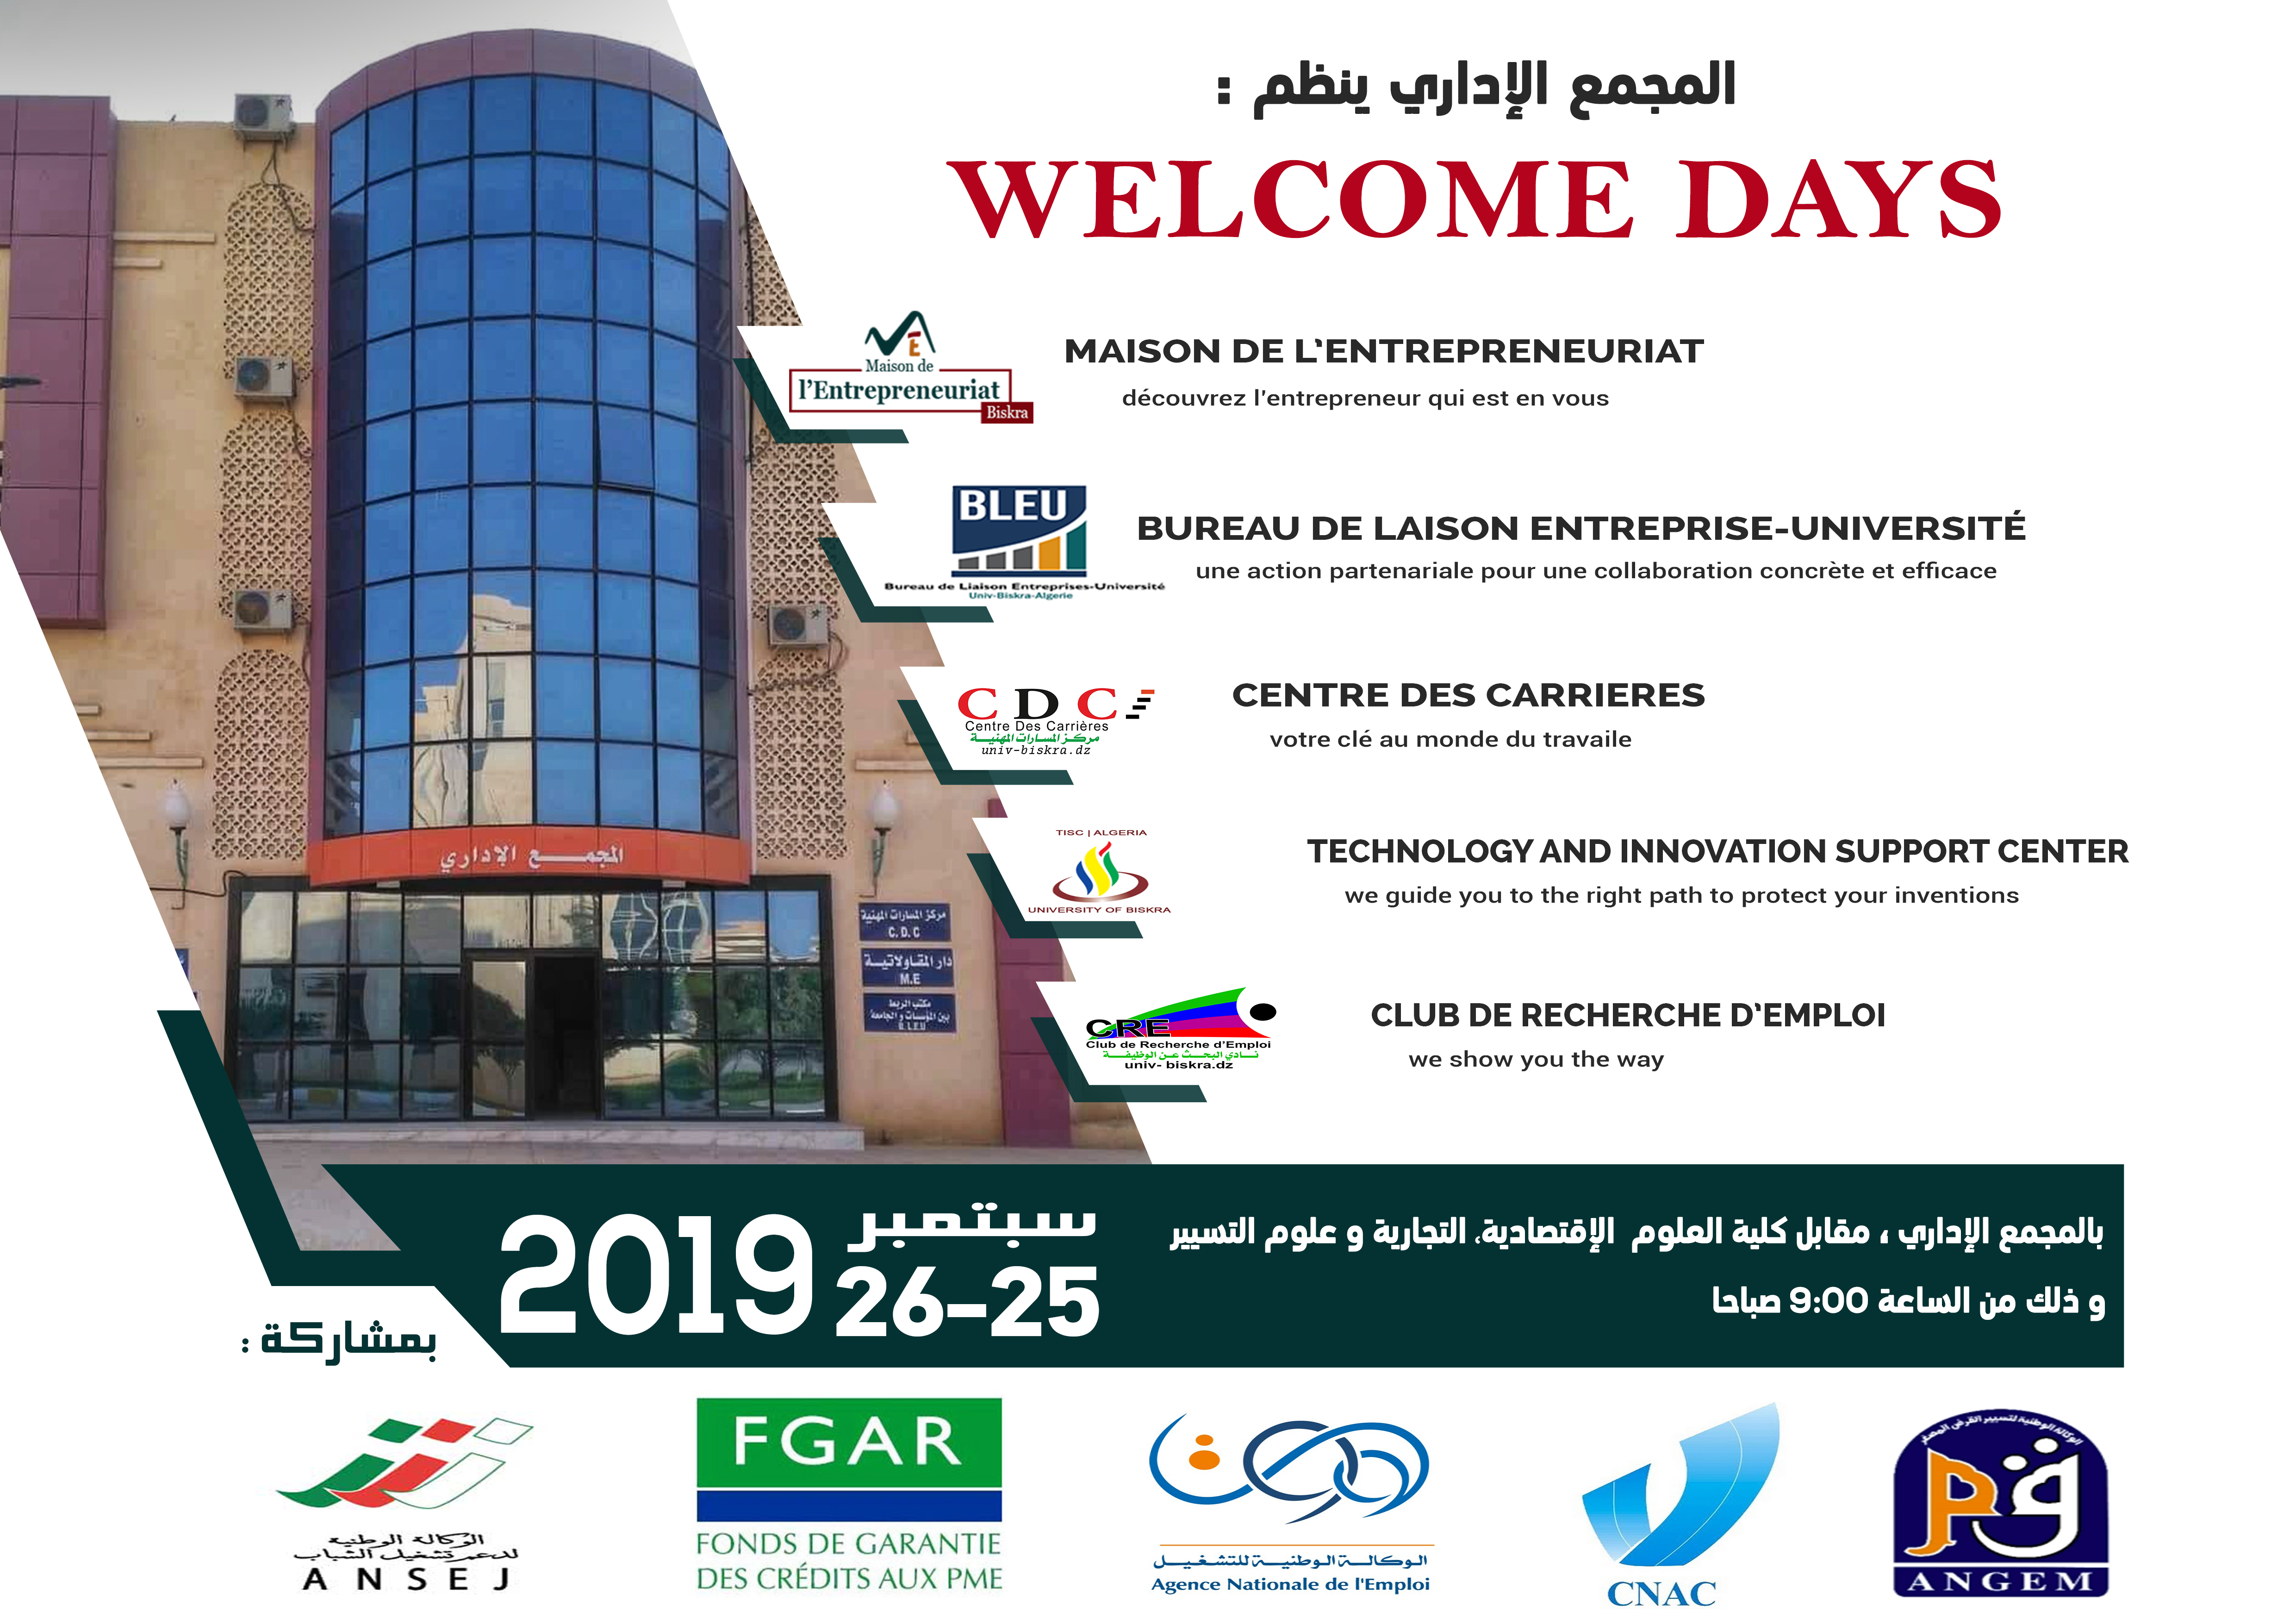 affiche welcome days 1